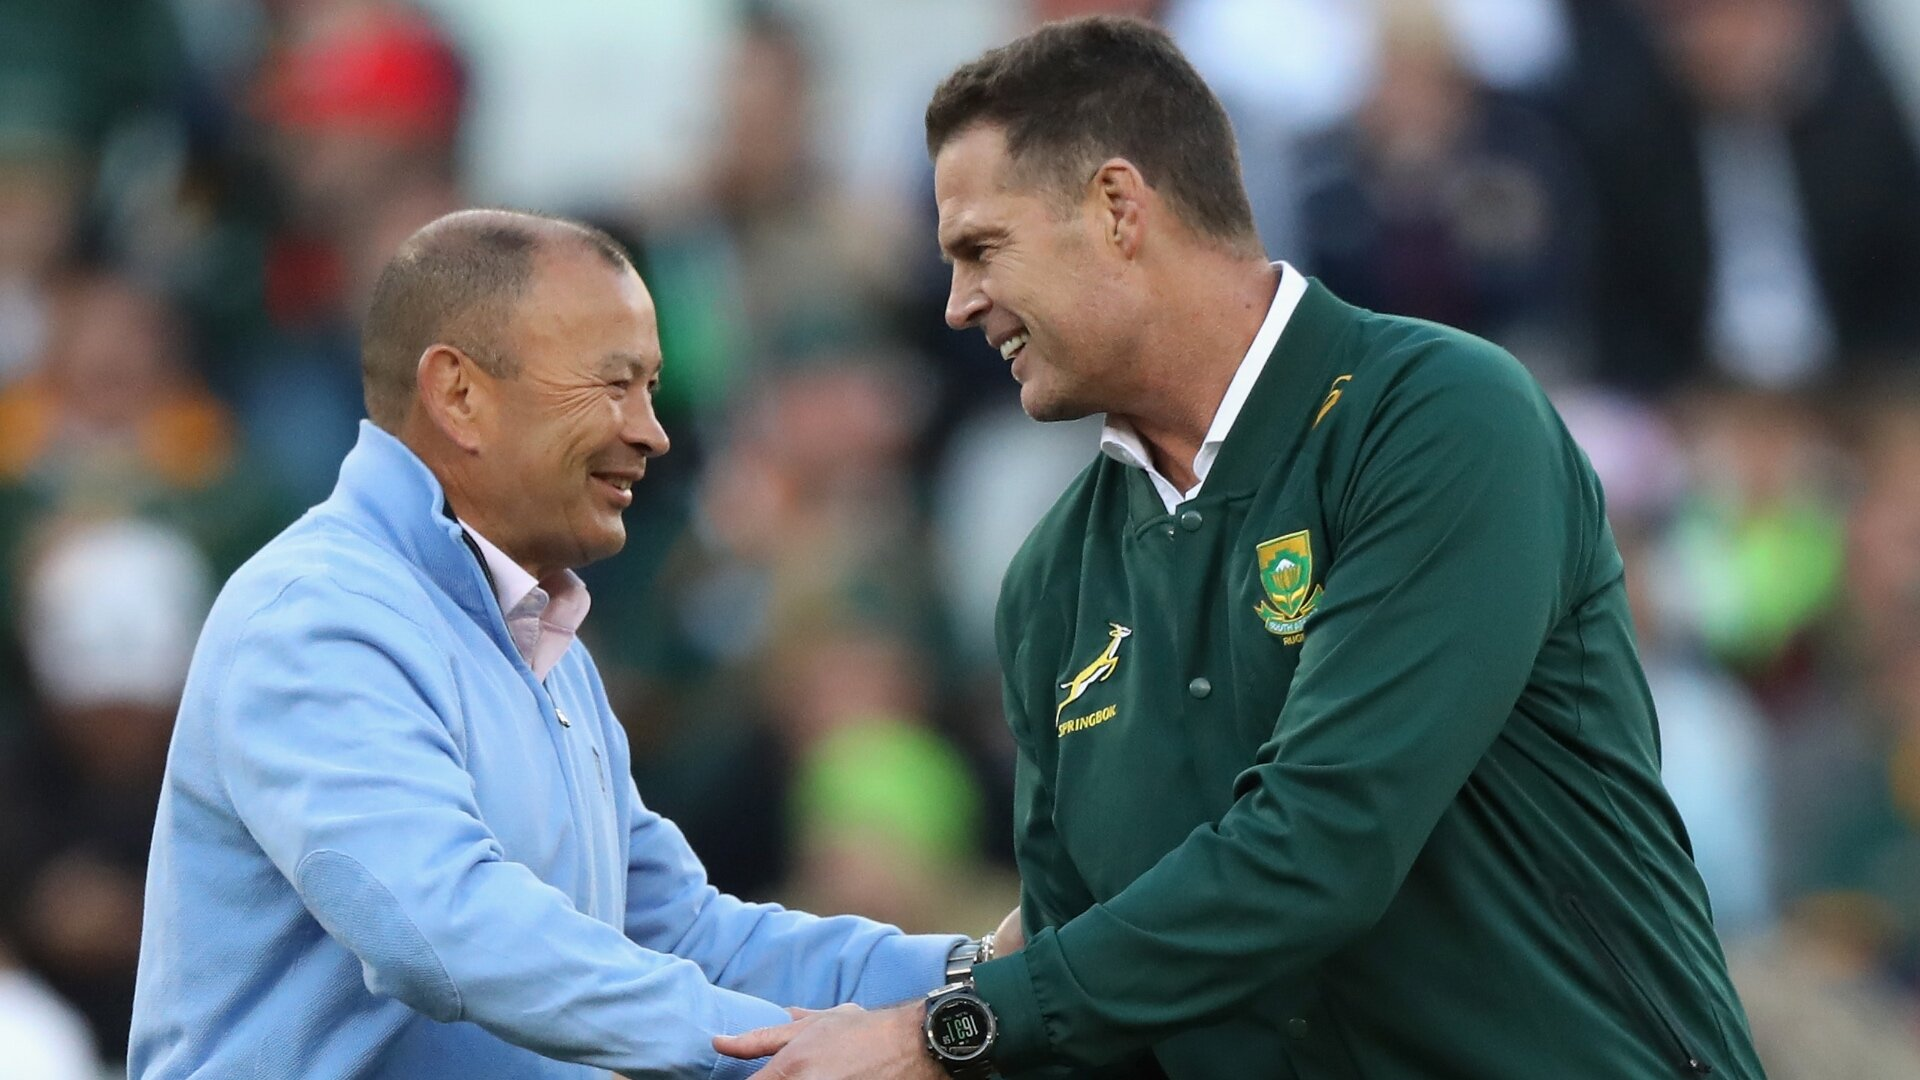 Erasmus, Jones head roster of leading names appointed to a dozen interim World Rugby committees